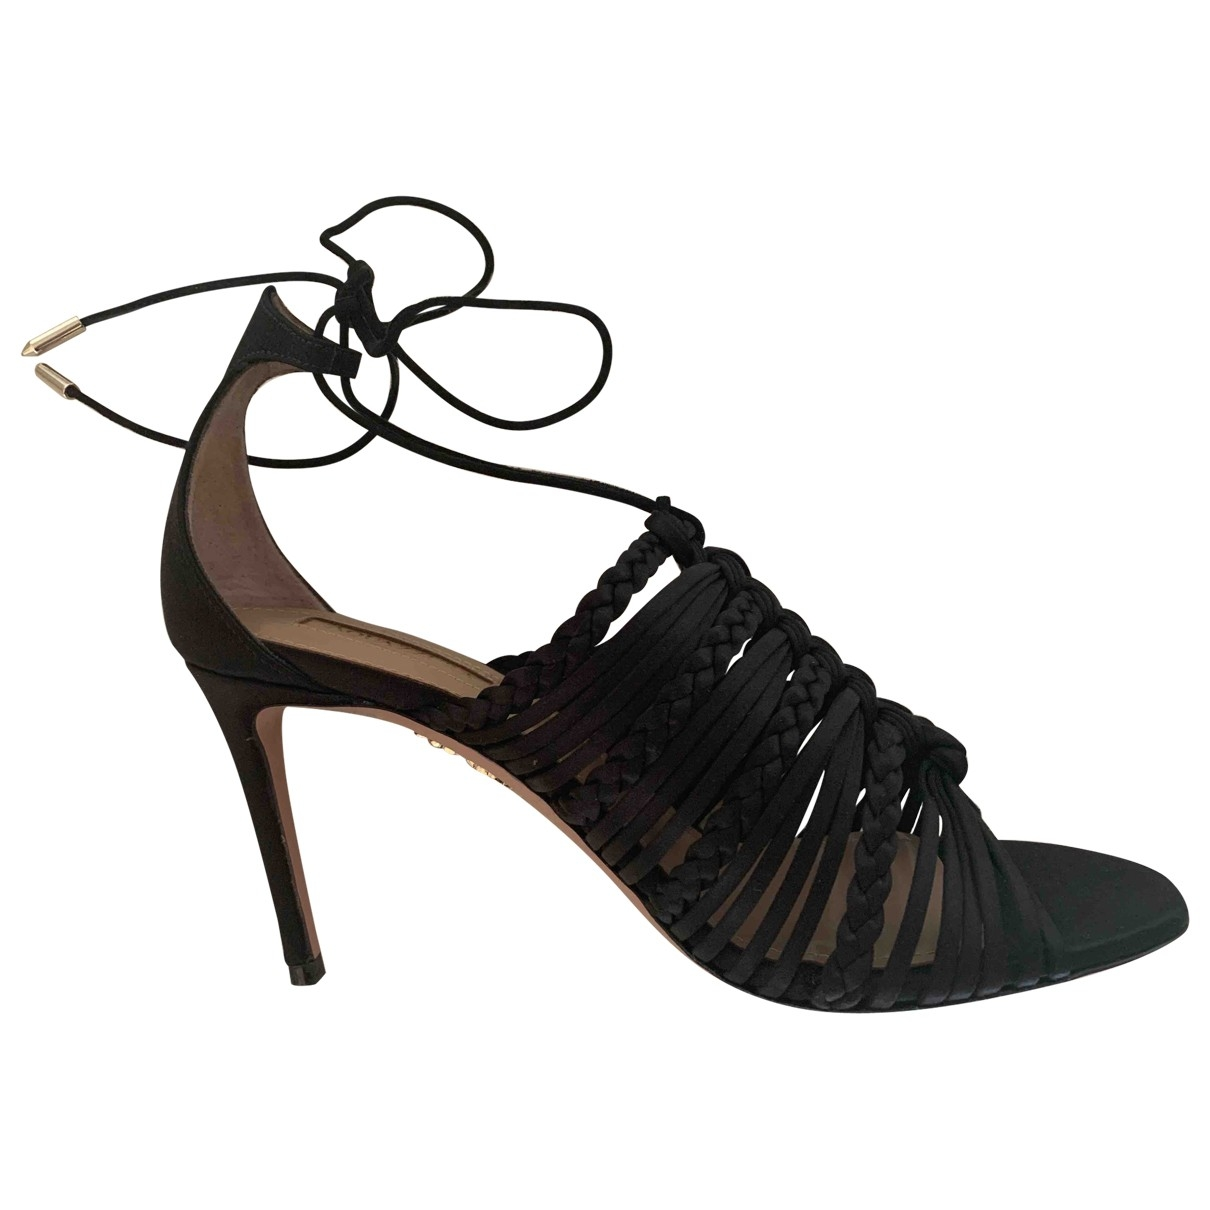 Aquazzura \N Black Leather Sandals for Women 36 IT